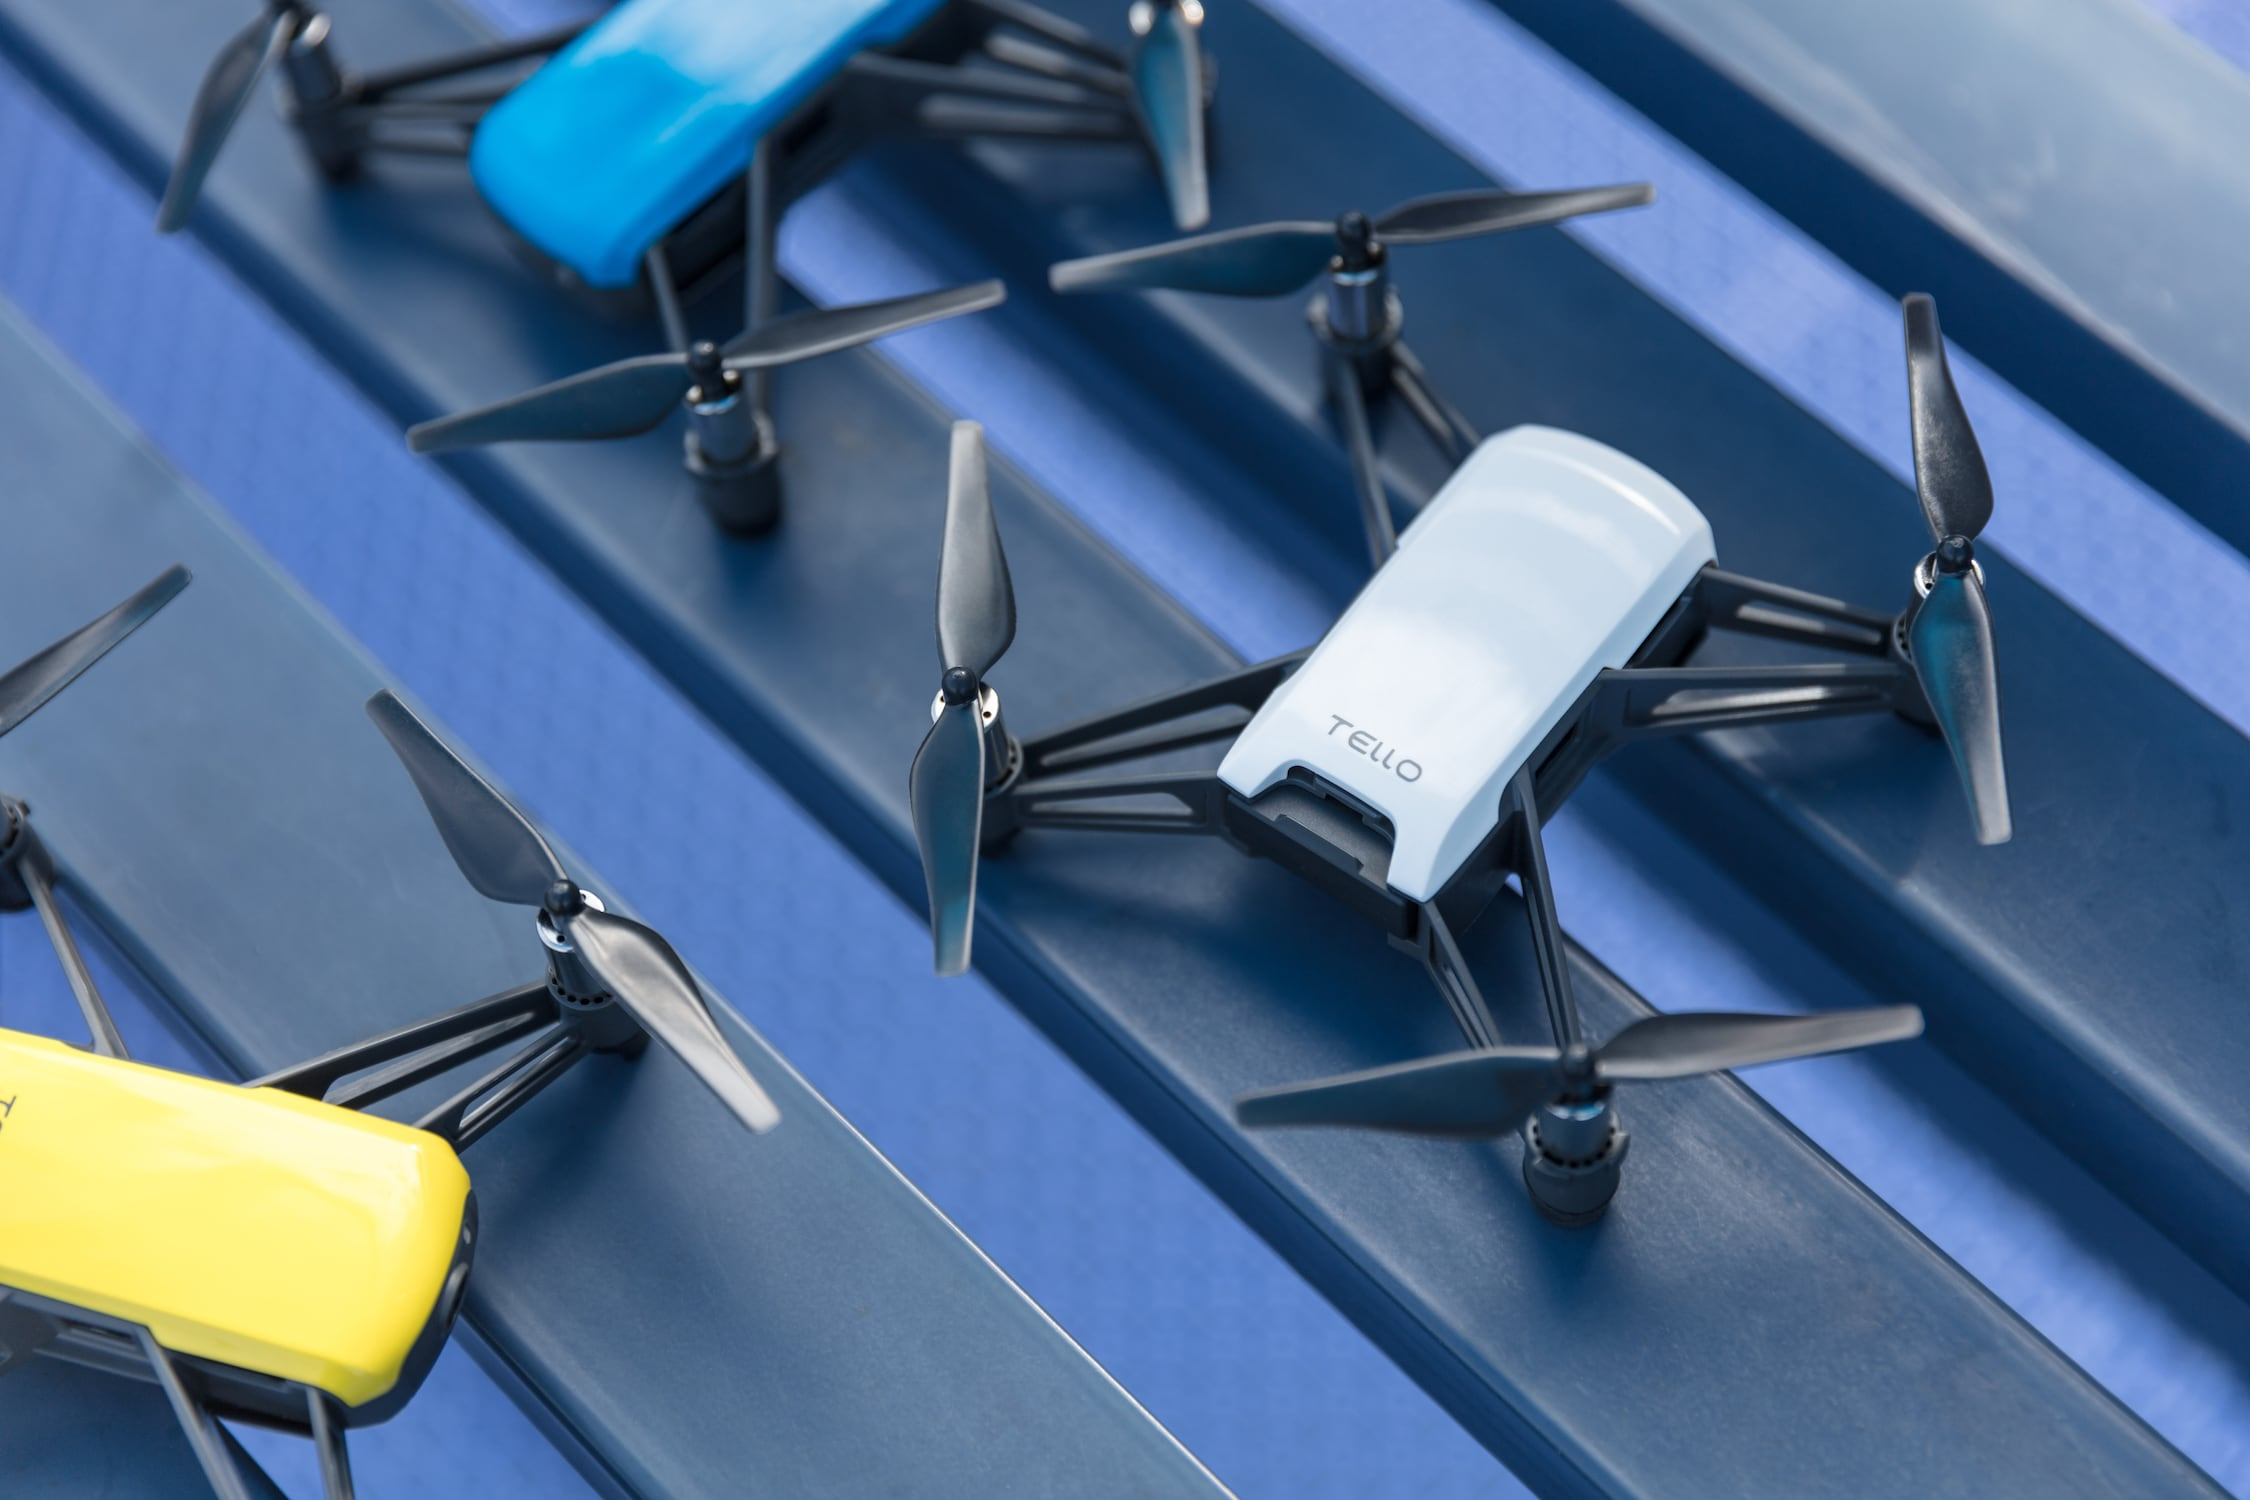 The best drones to buy —no matter the budget